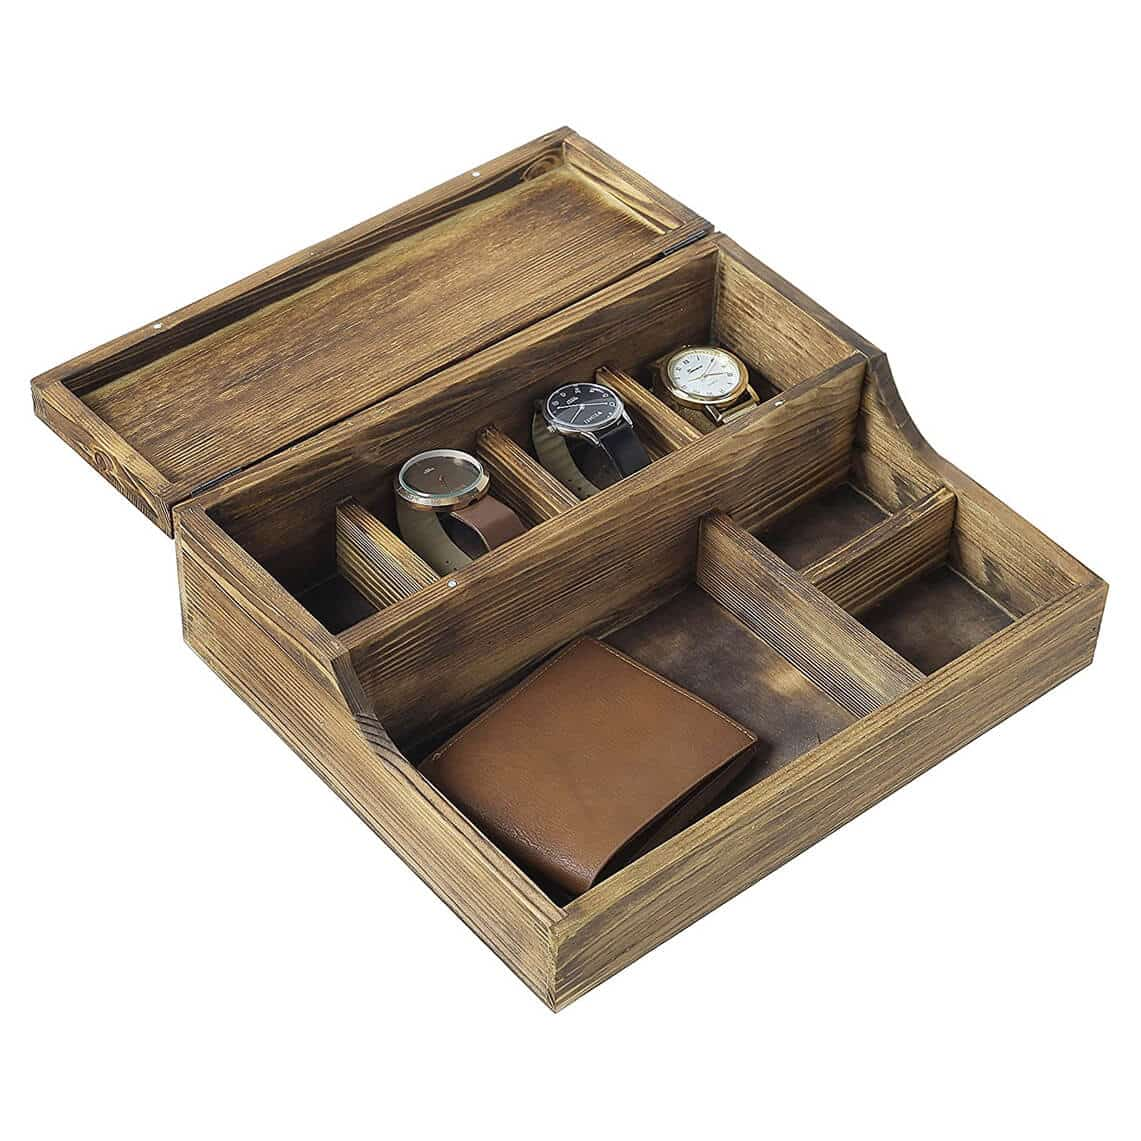 MyGift Watch Case and Valet Tray